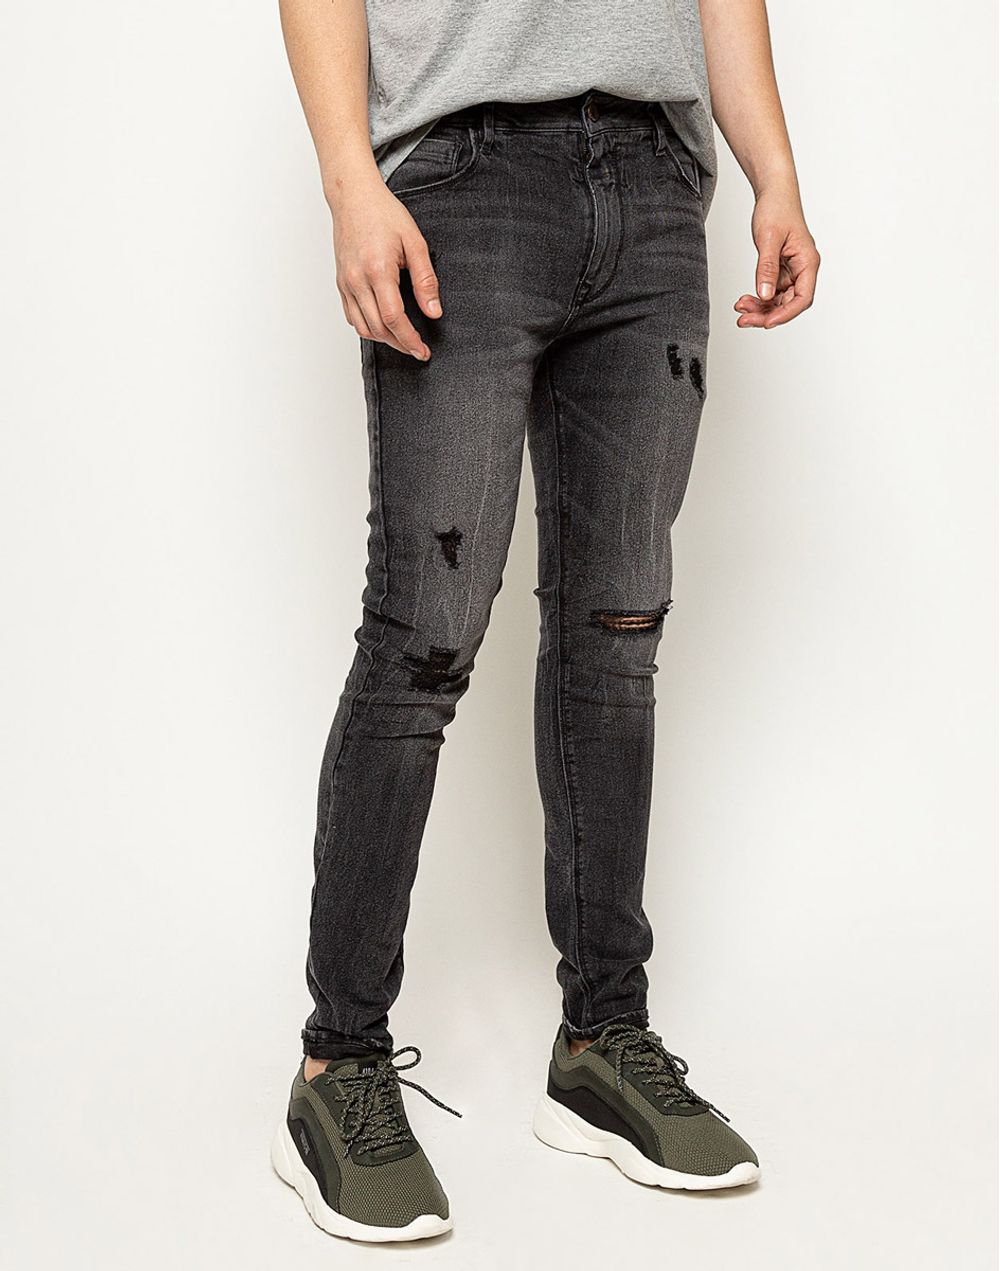 Black Denim Skinny Jeans Rotos Negro 34 Compra En Tienda Color Blue Colorblue